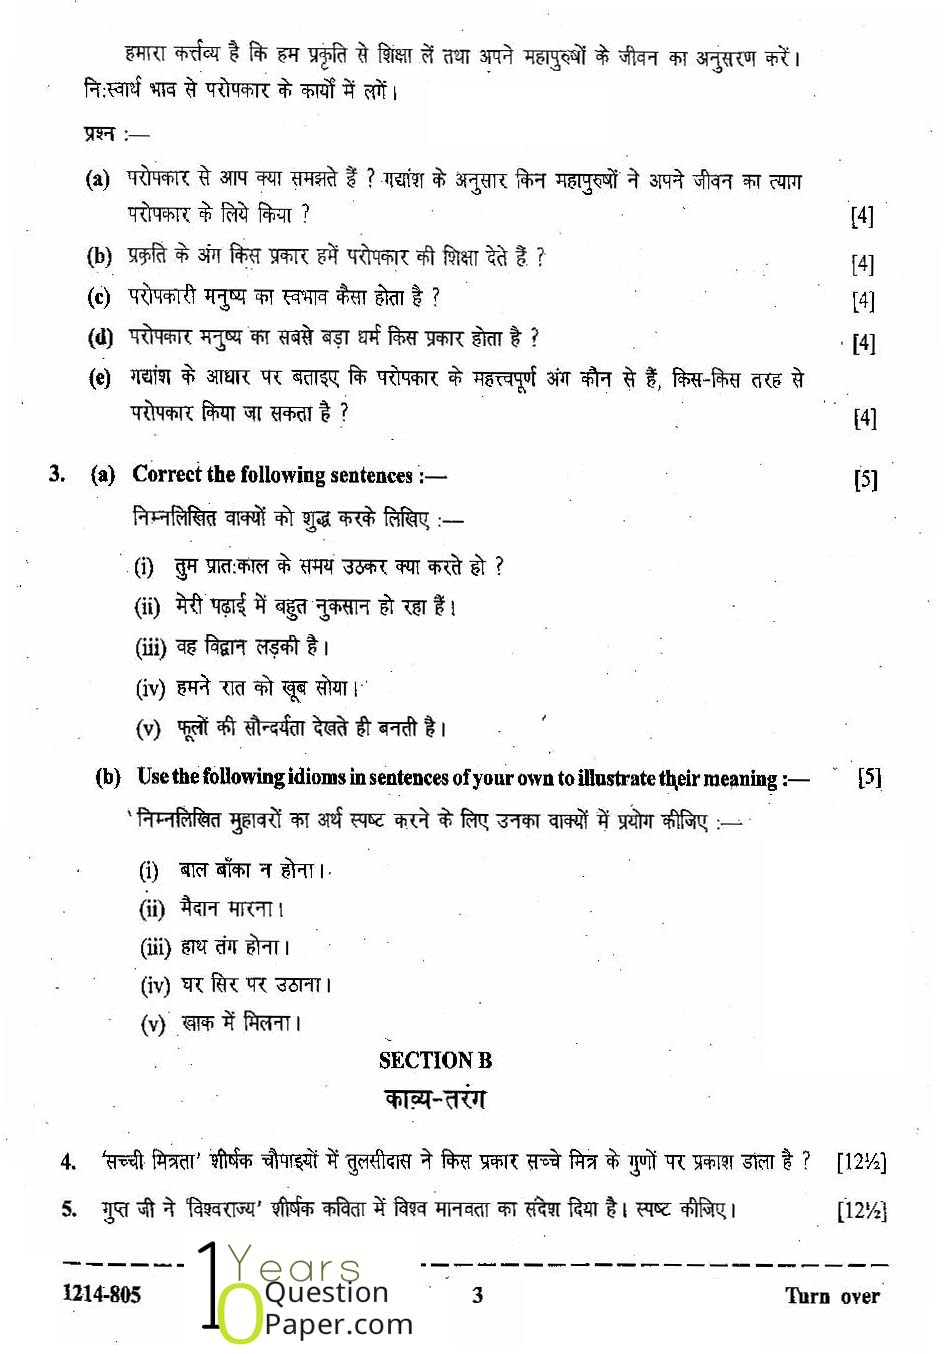 ISC 2014 Hindi Class 12 Board Question Paper 10 Years